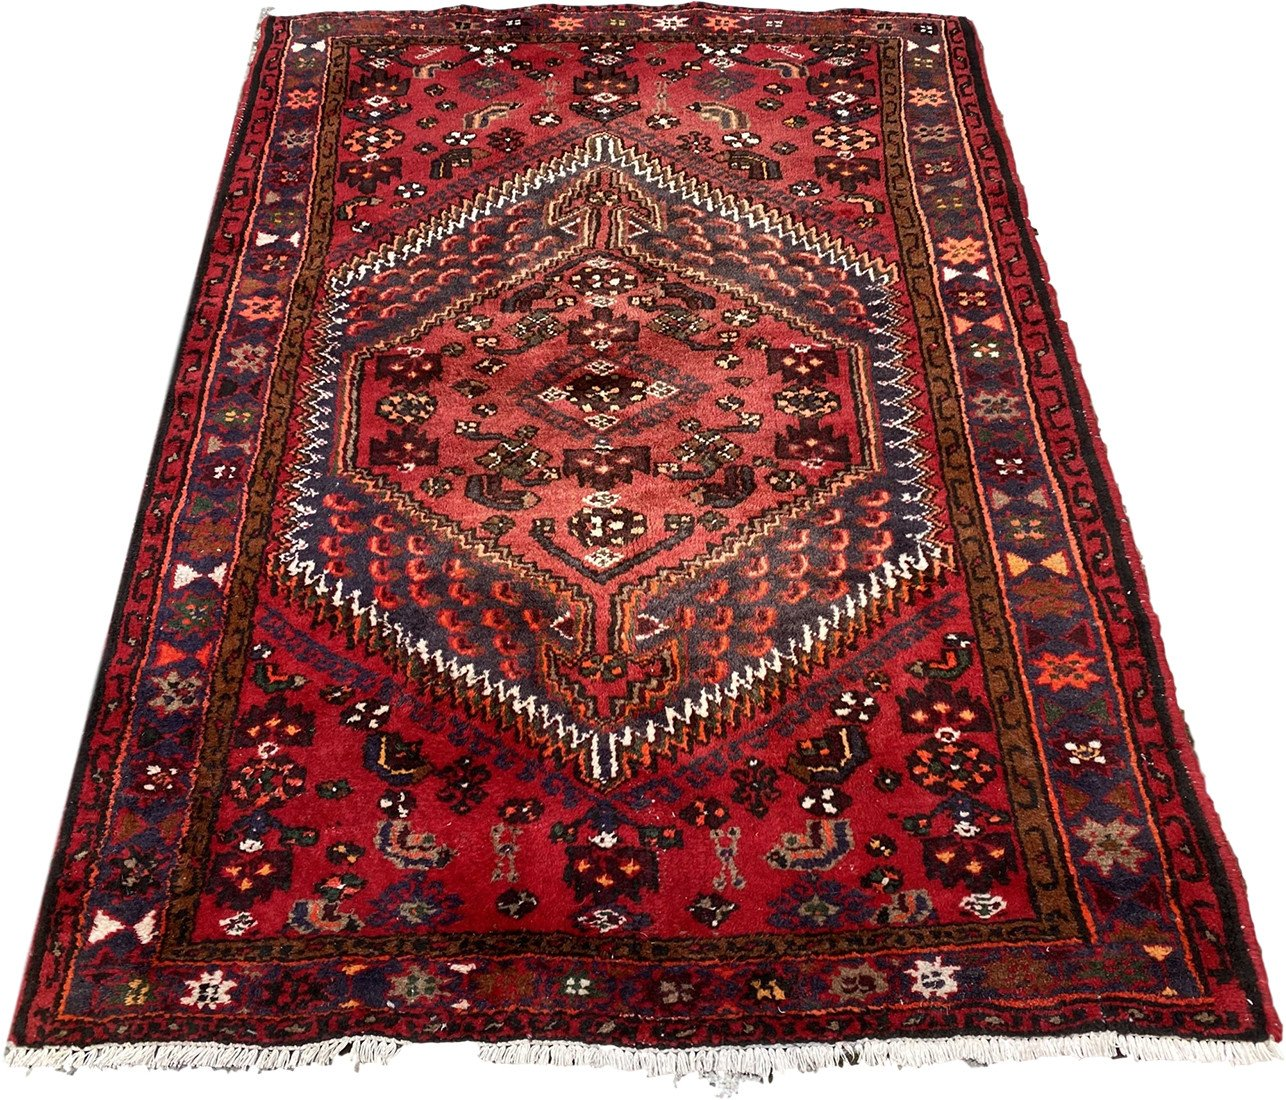 Carpet 130x190, Iran, 1940s